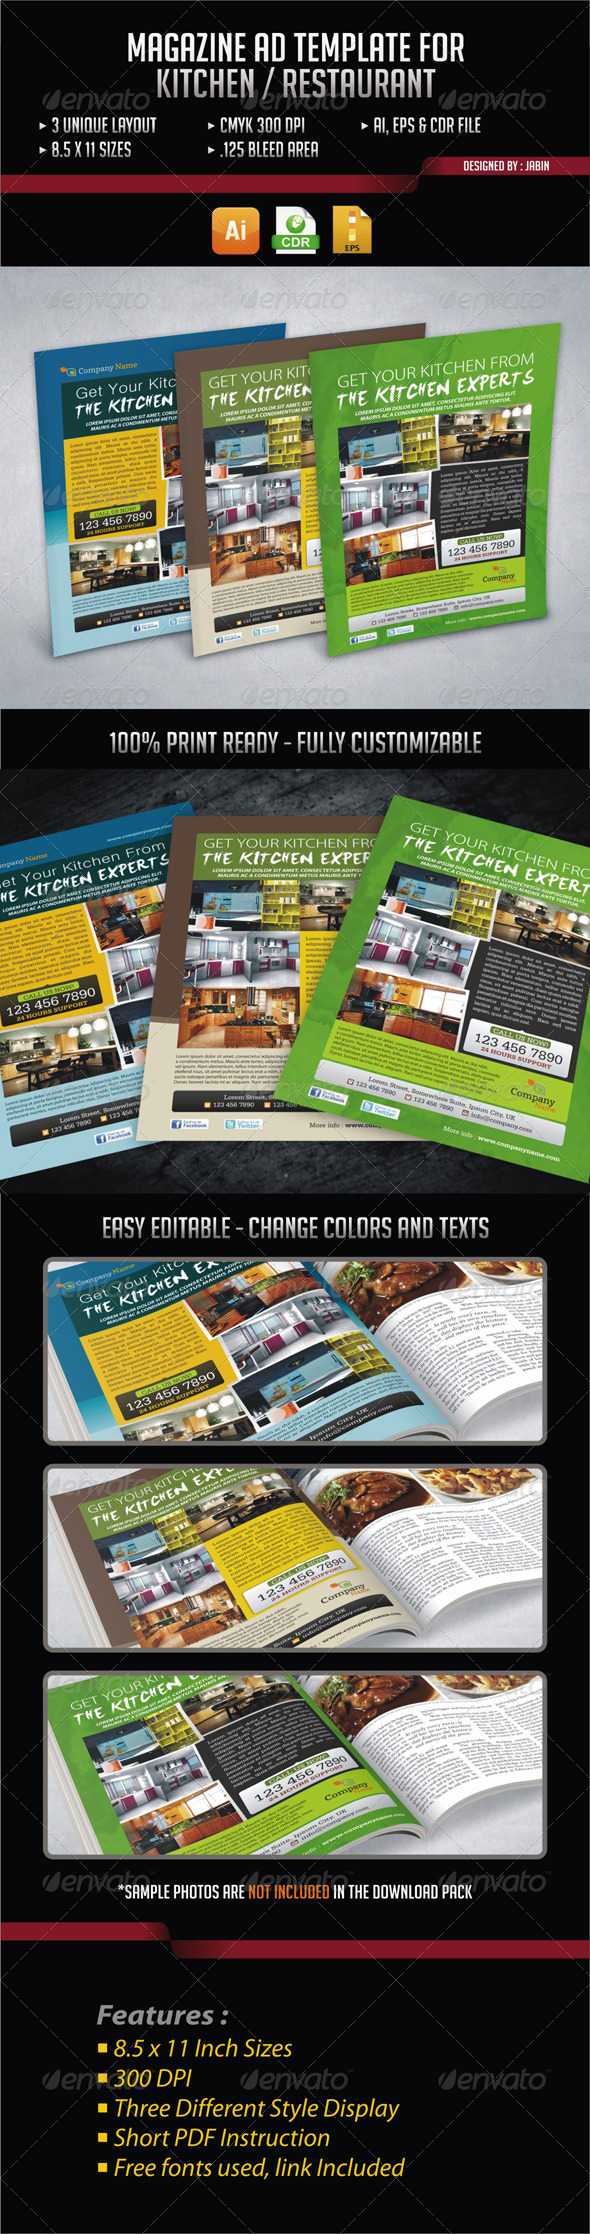 GraphicRiver Magazine Ad Template for Kitchen Restaurant 4319106